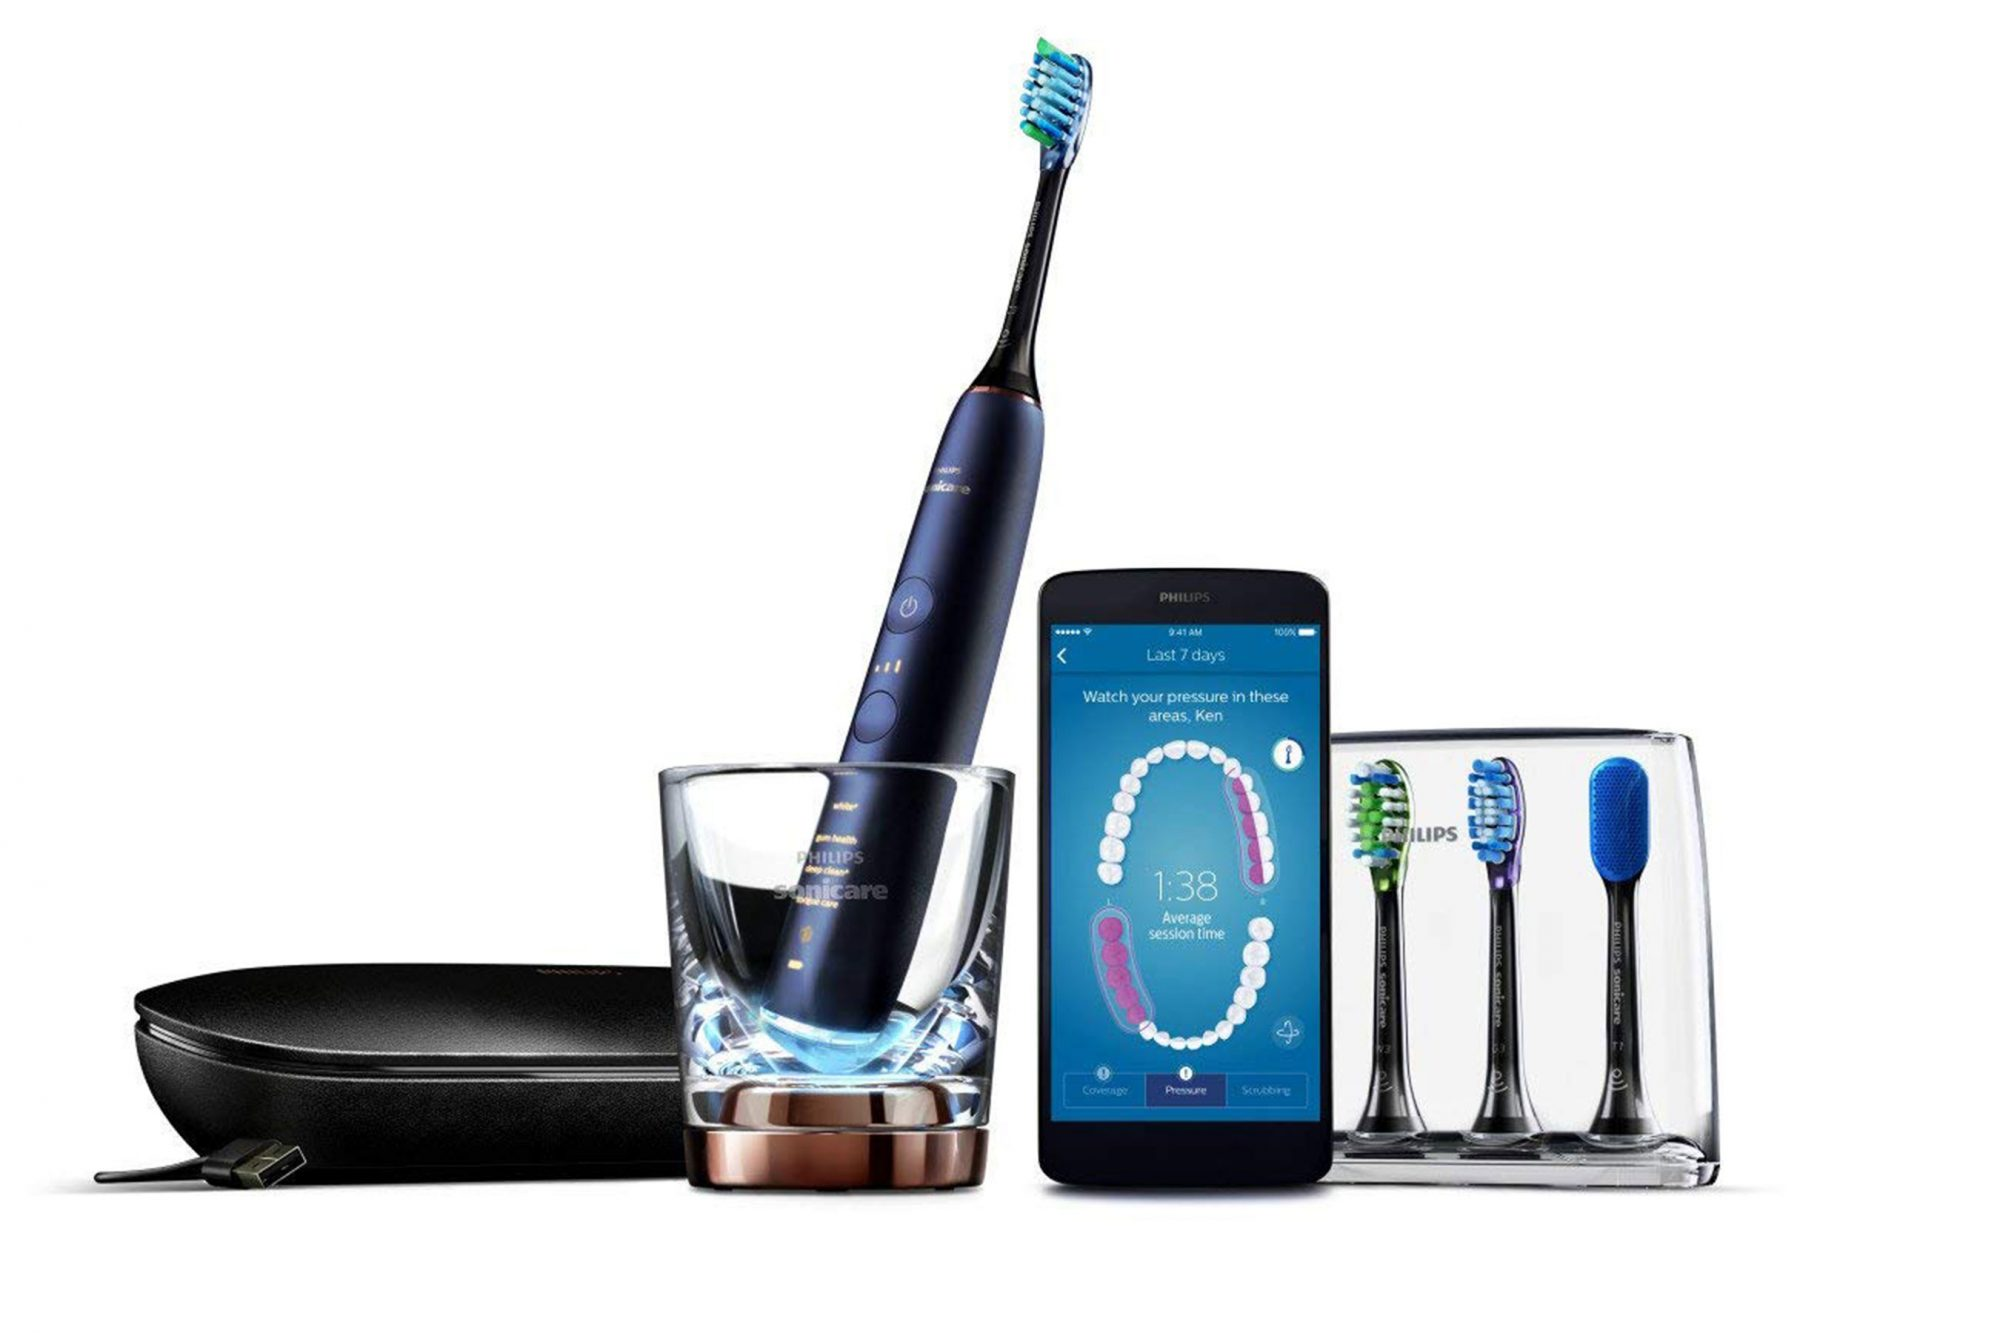 Philips Sonicare DiamondClean Smart Electric, Rechargeable Toothbrush on Amazon Prime Day